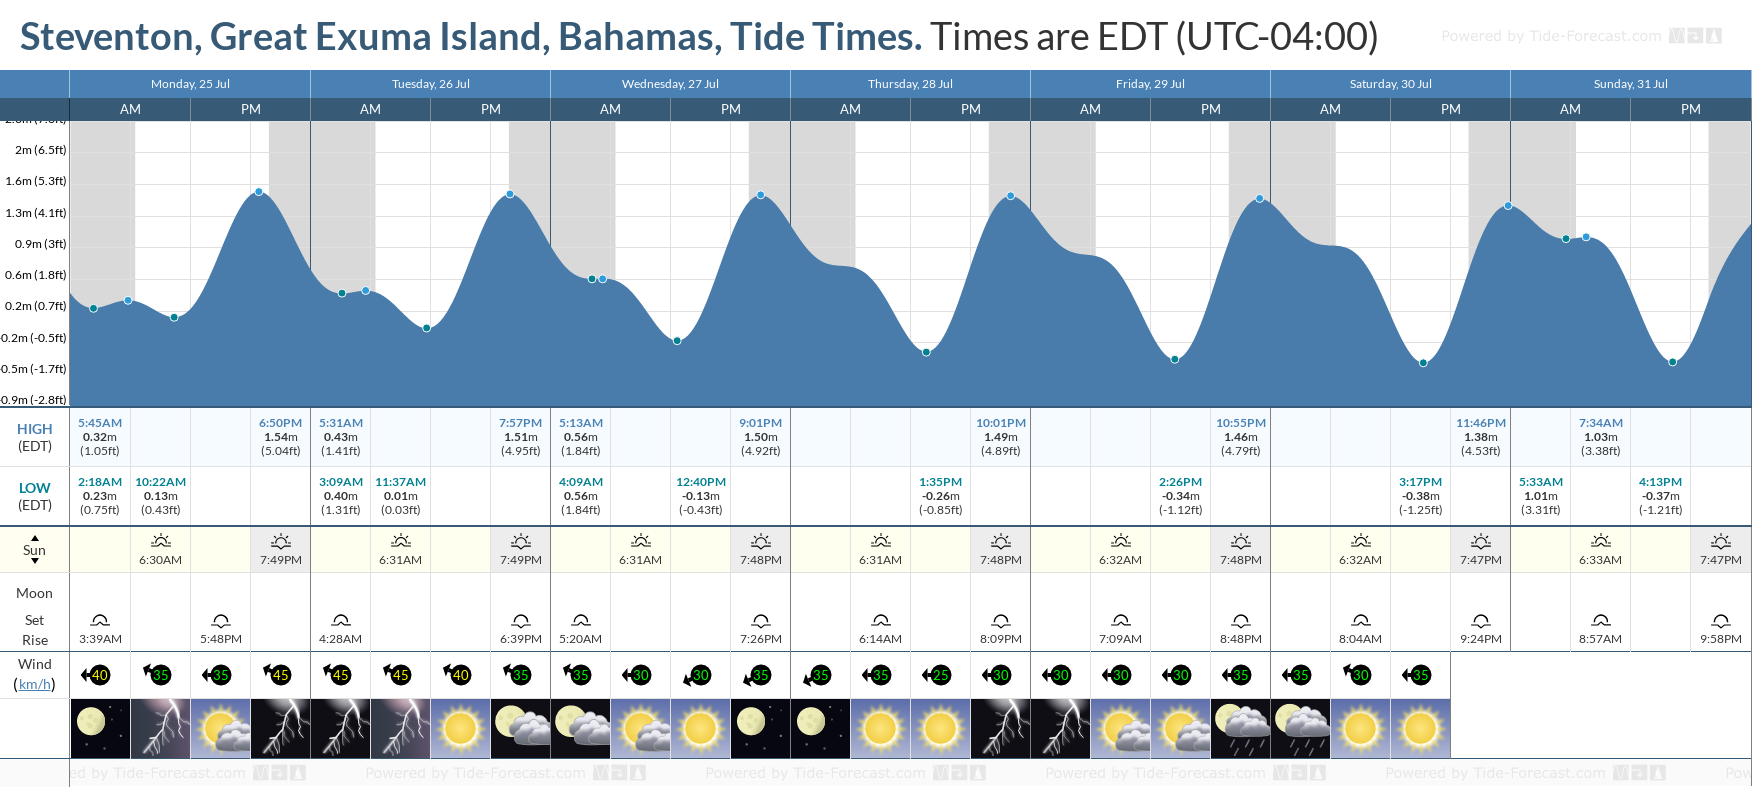 Steventon, Great Exuma Island, Bahamas Tide Chart including high and low tide tide times for the next 7 days